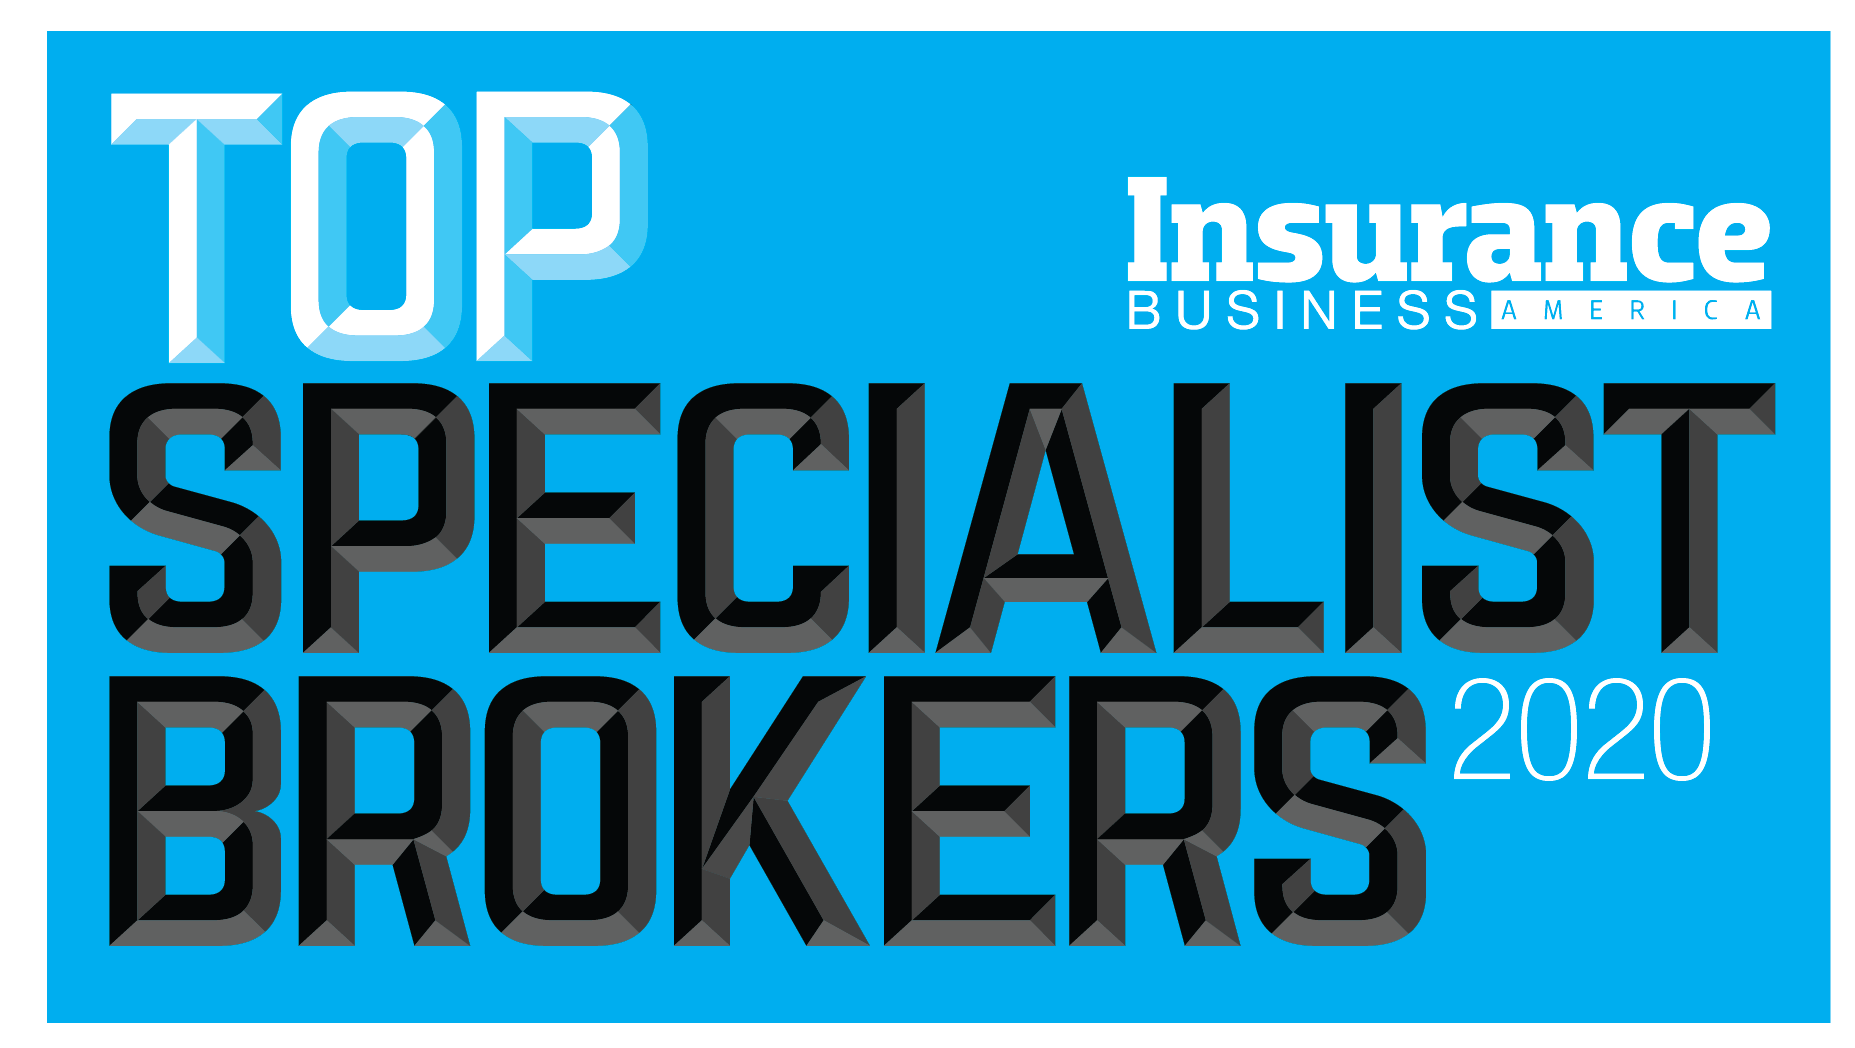 Top Specialist Brokers 2020